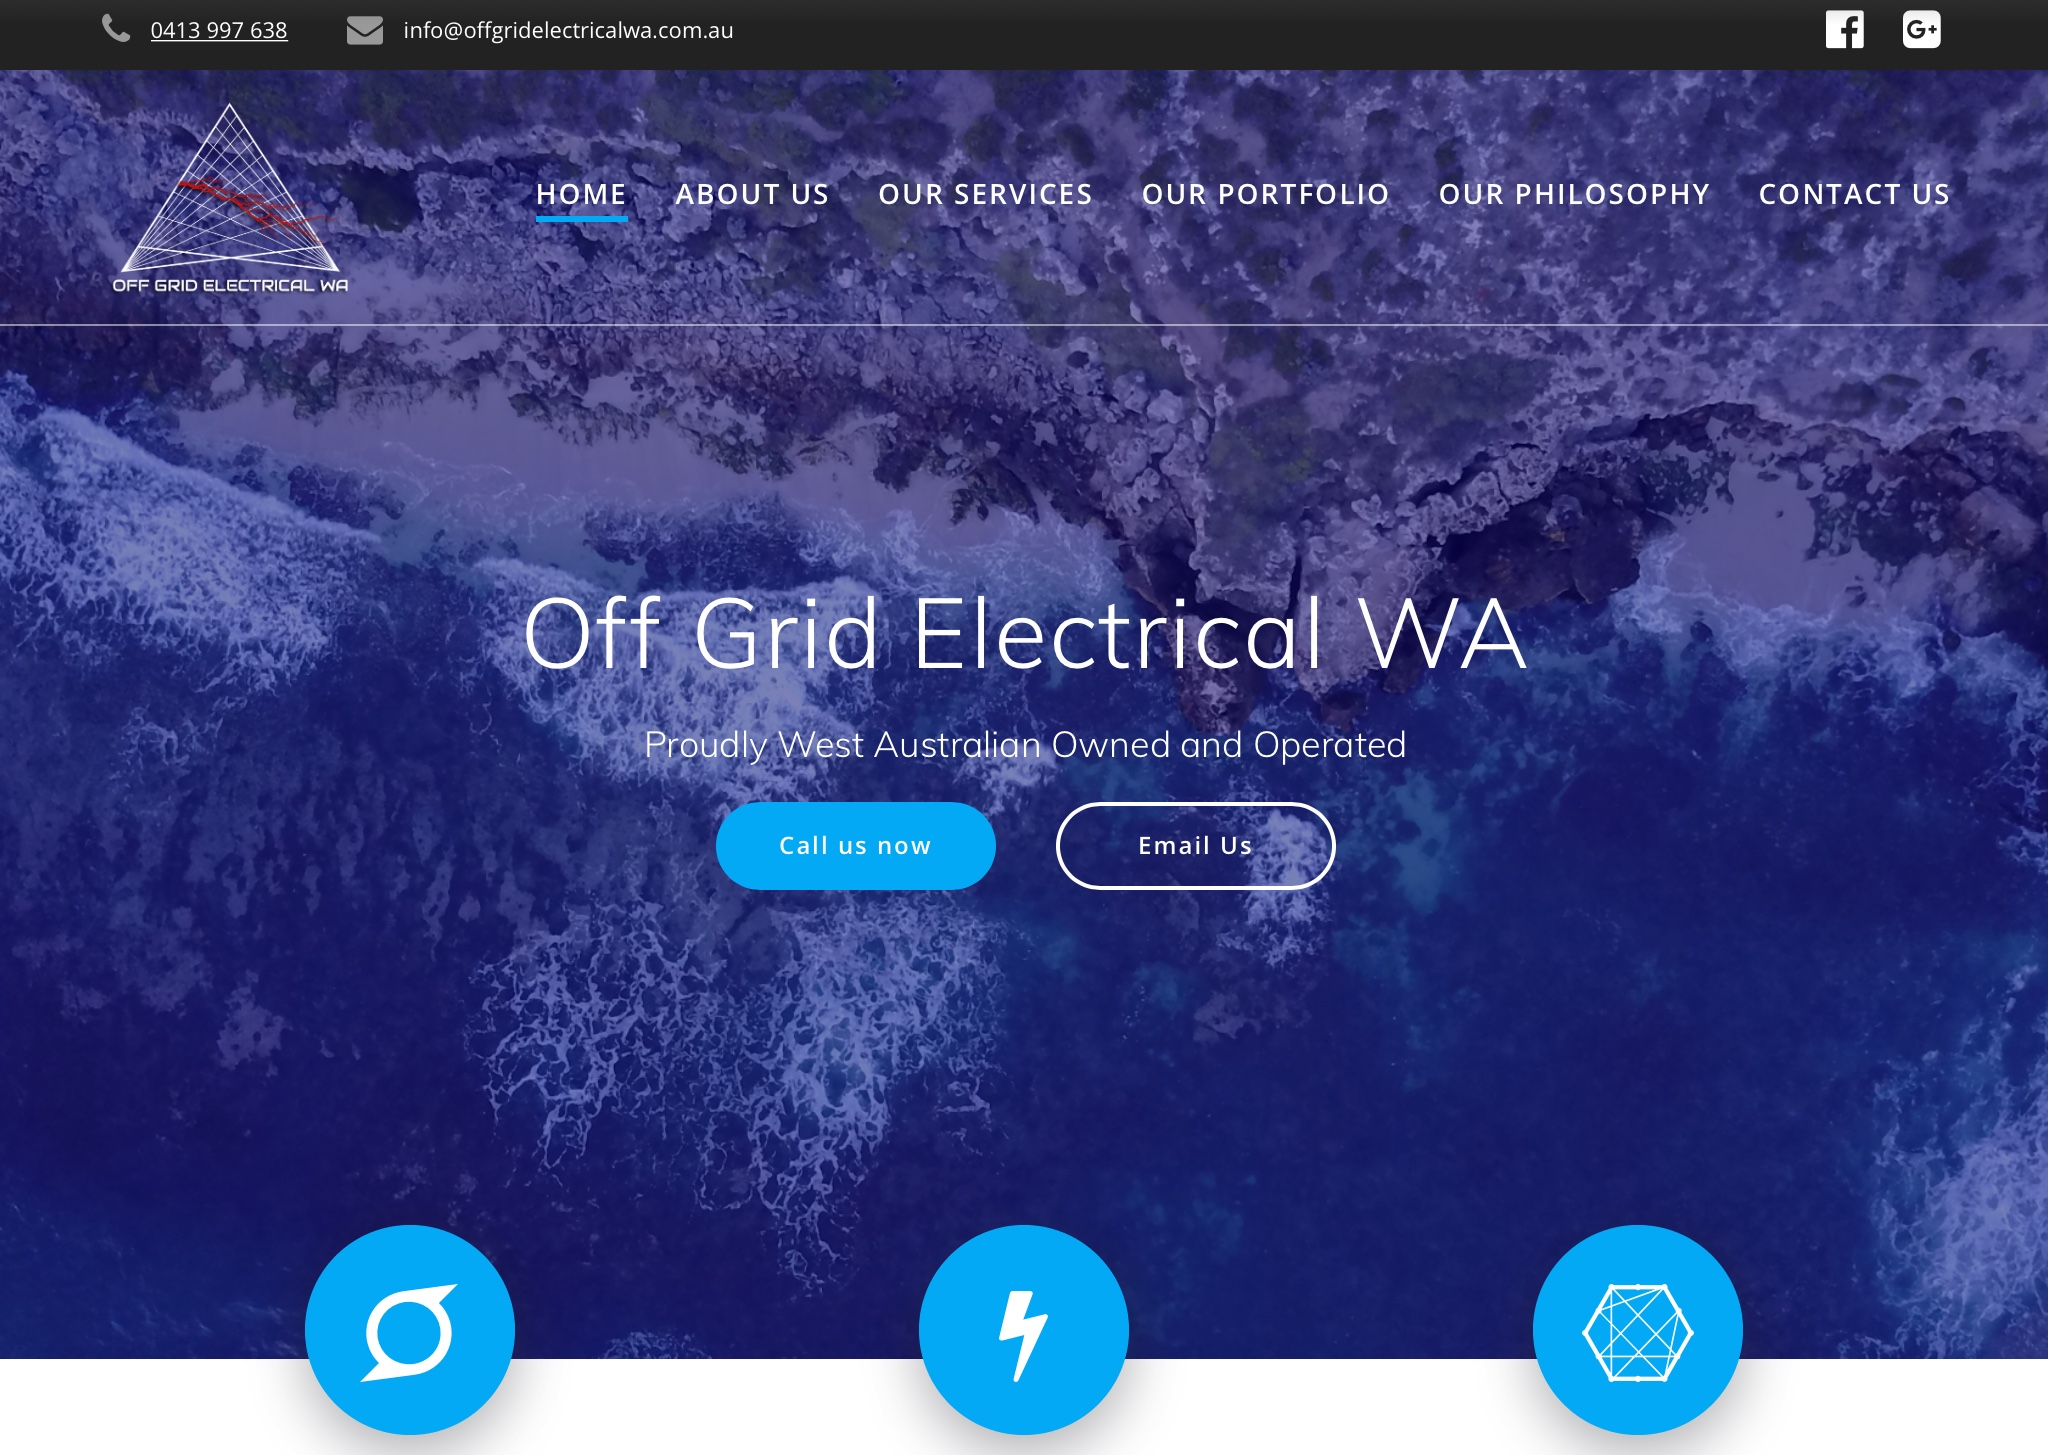 Off Grid Electrical WA